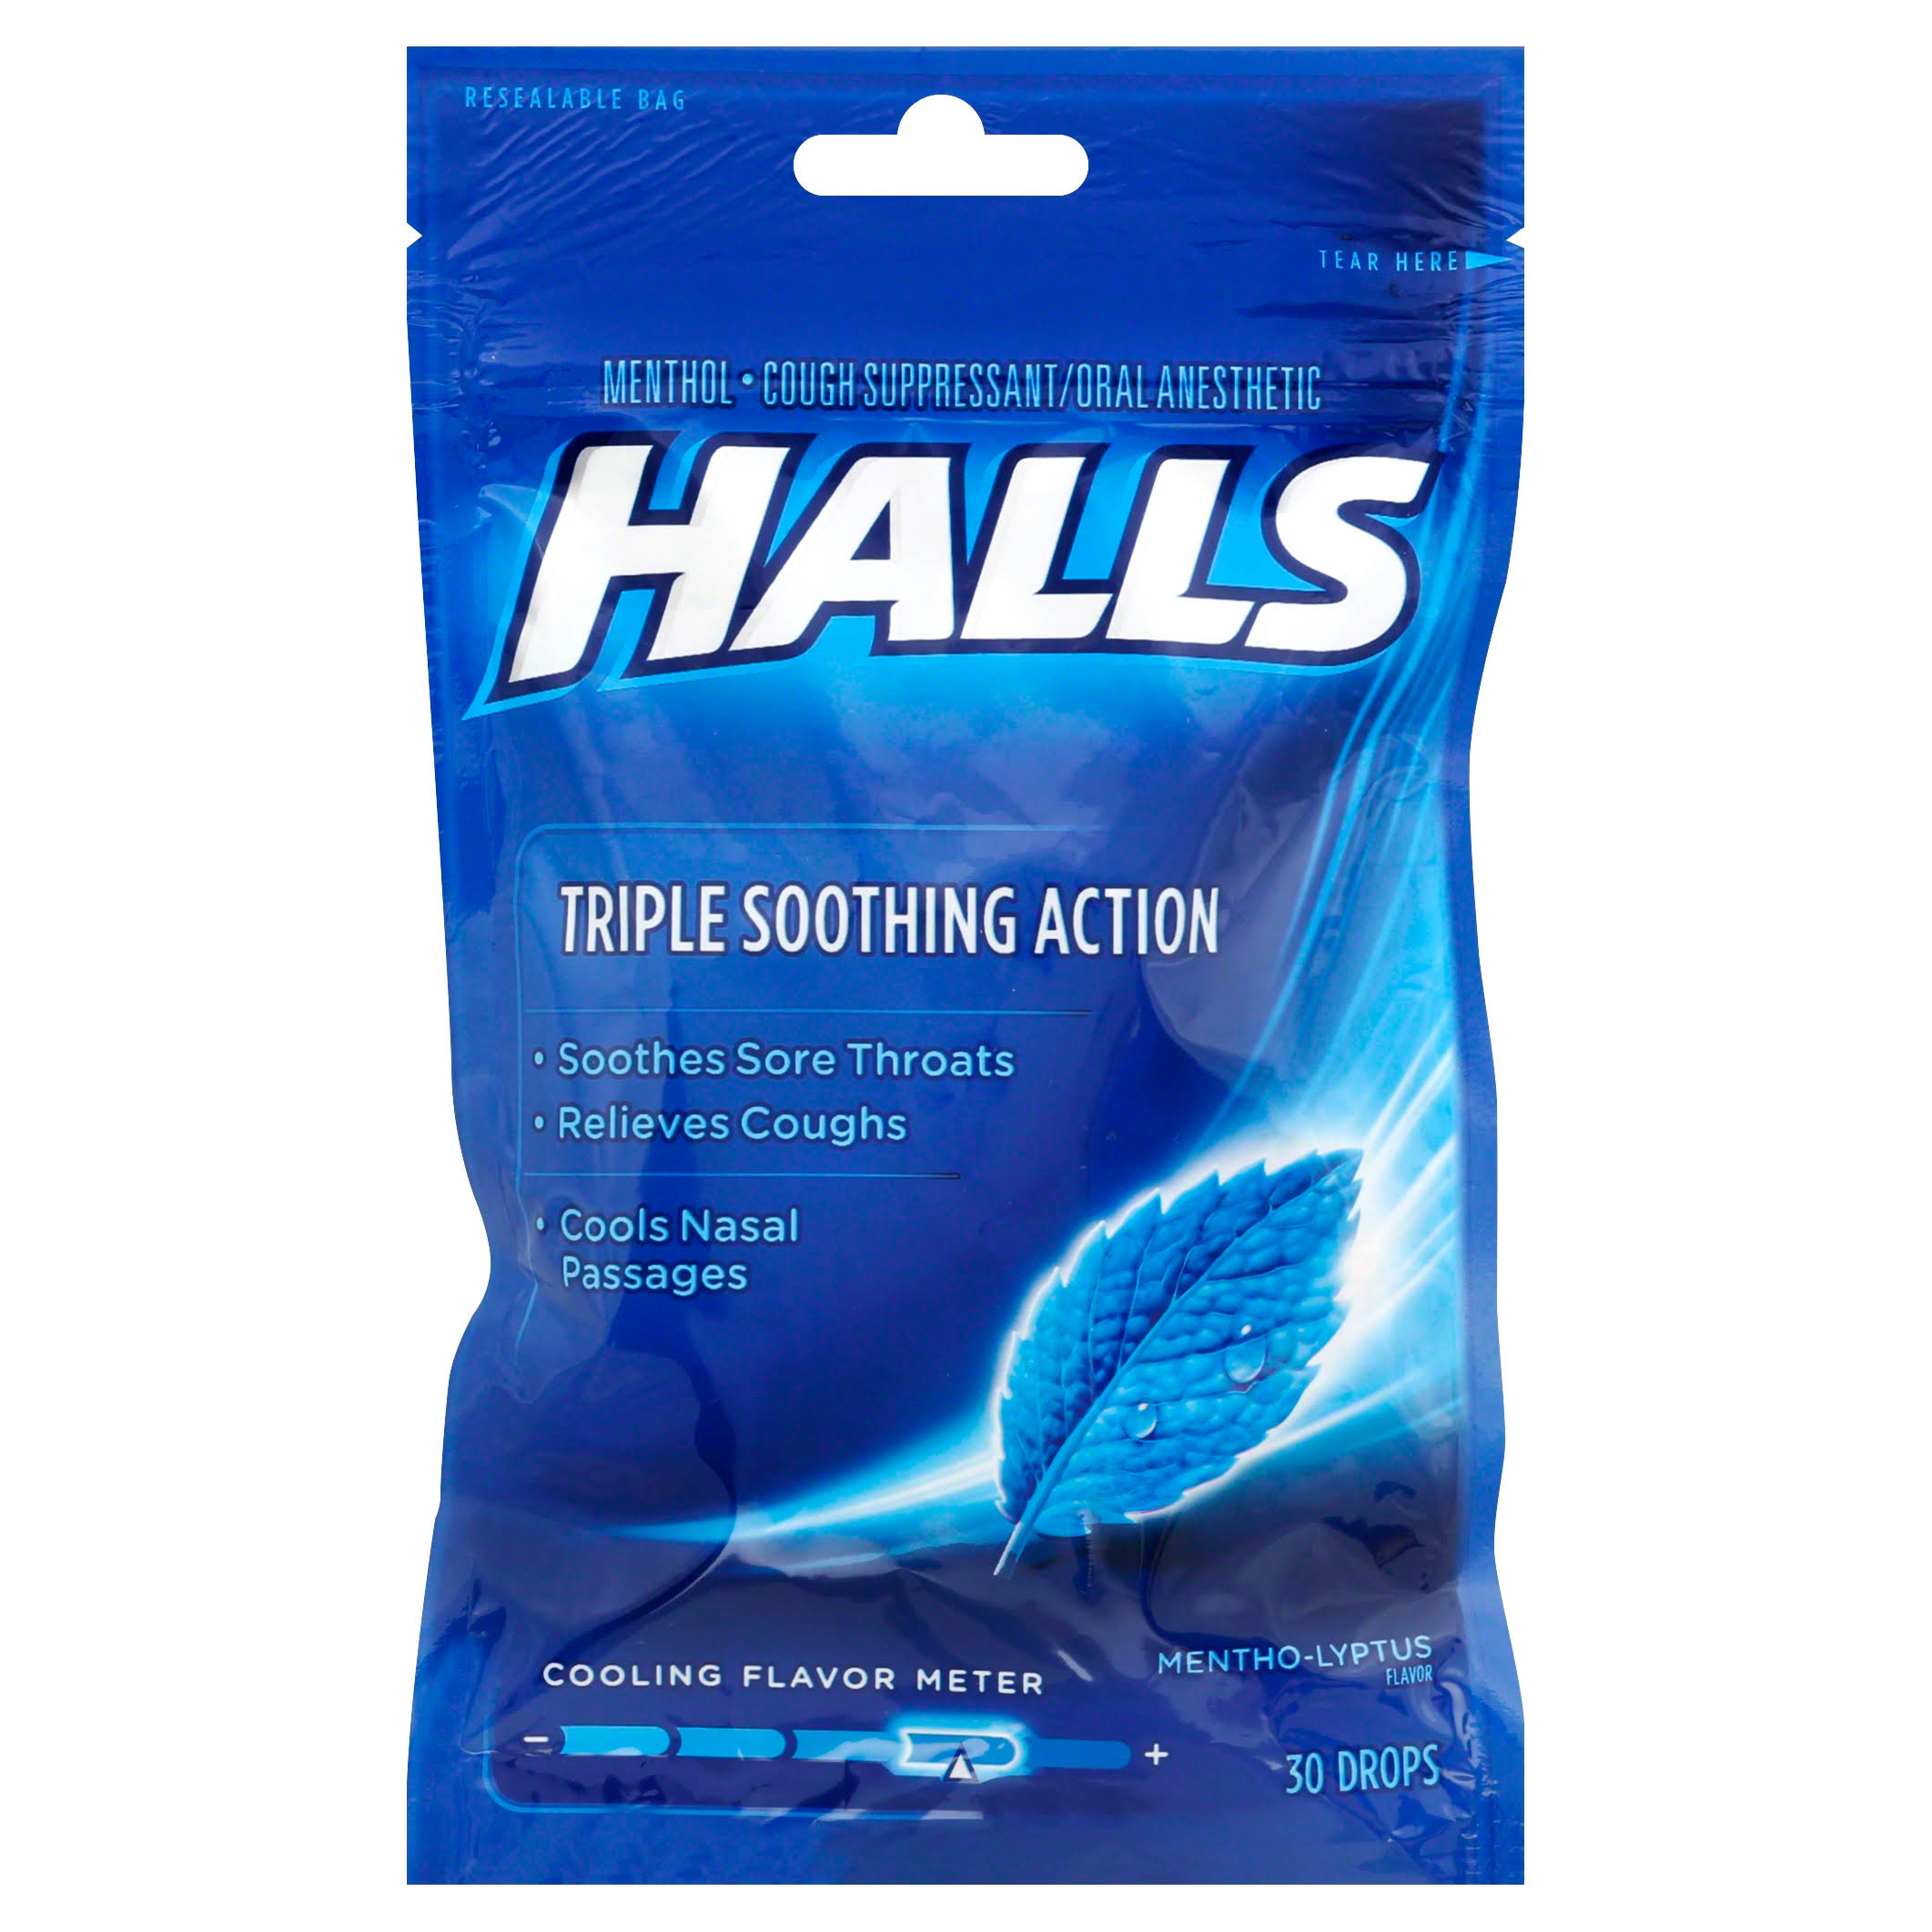 Halls Triple Soothing Action Cough Drops - Mentho-Lyptus Flavor, 30ct